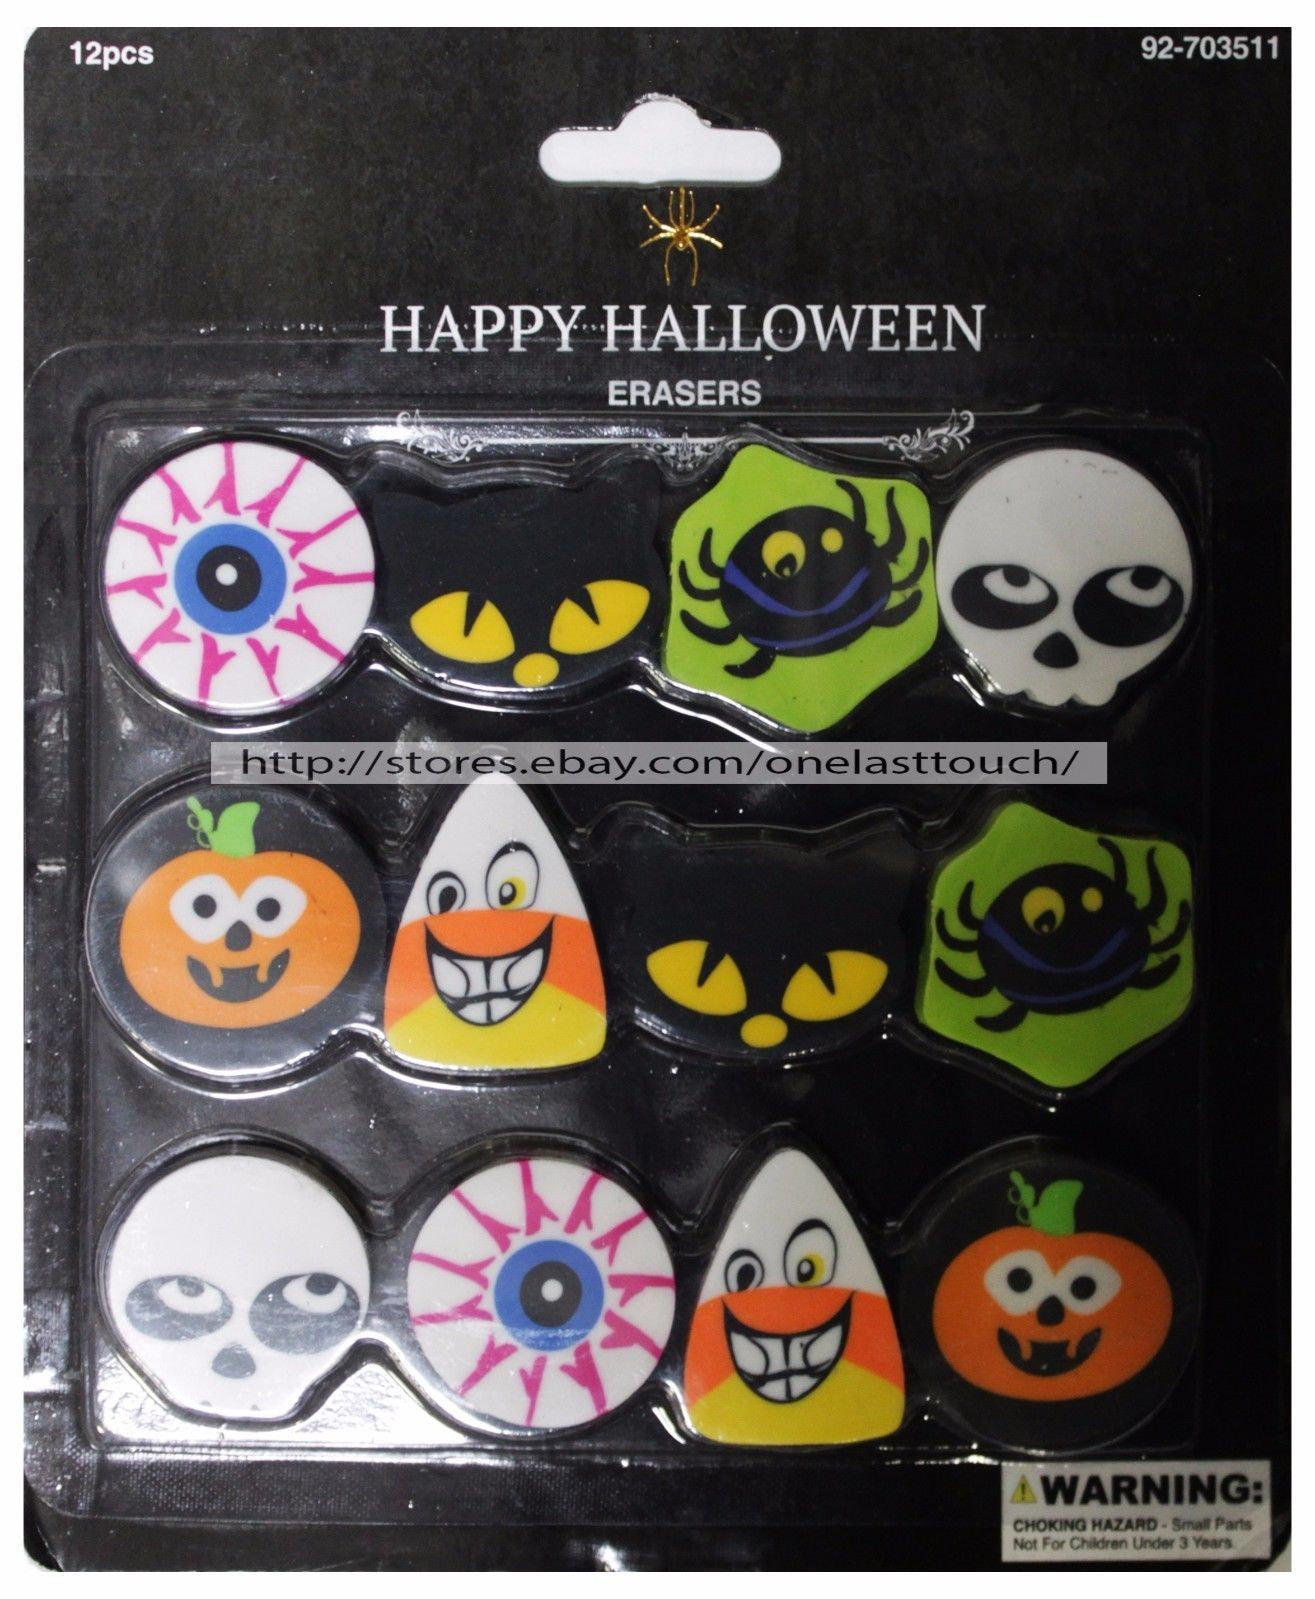 MOMENTUM* 12 Count HAPPY HALLOWEEN Party Favors/Bag Fillers ERASERS *YOU CHOOSE* image 3